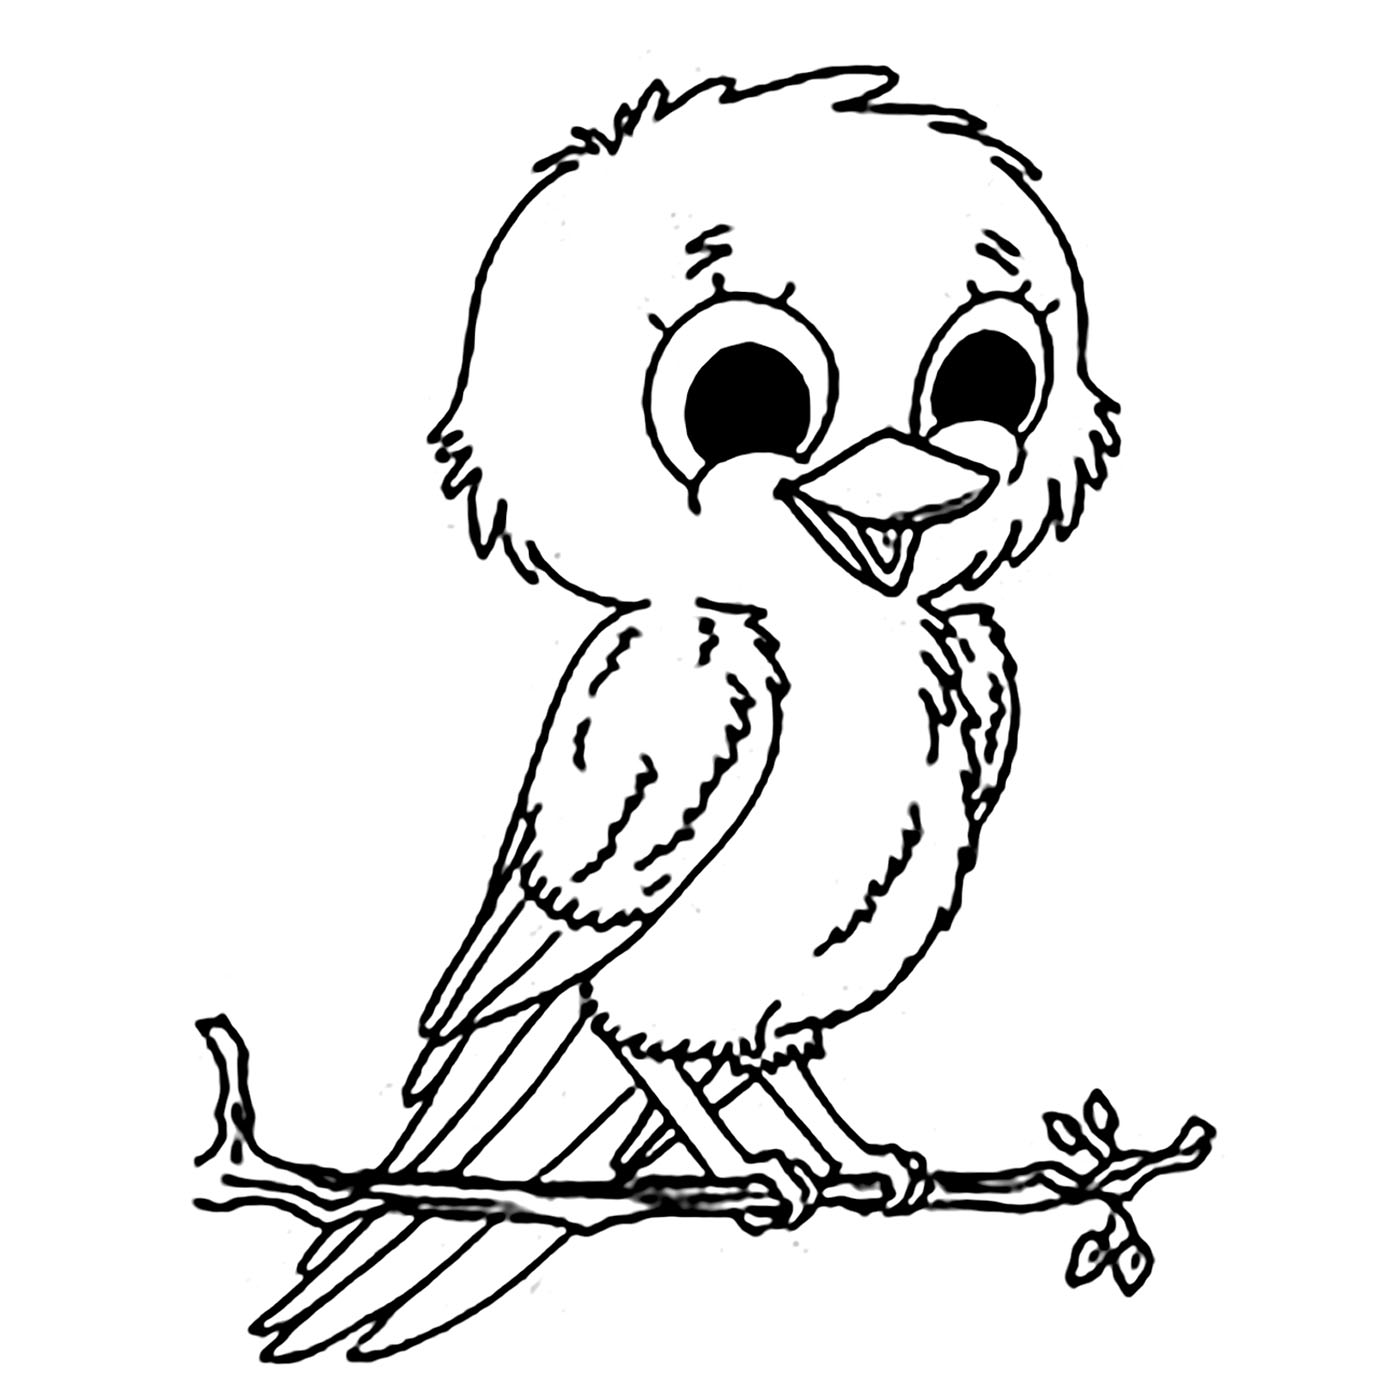 coloring pages for kids birds baby sparrow birds coloring pages coloring pages bird kids pages birds coloring for